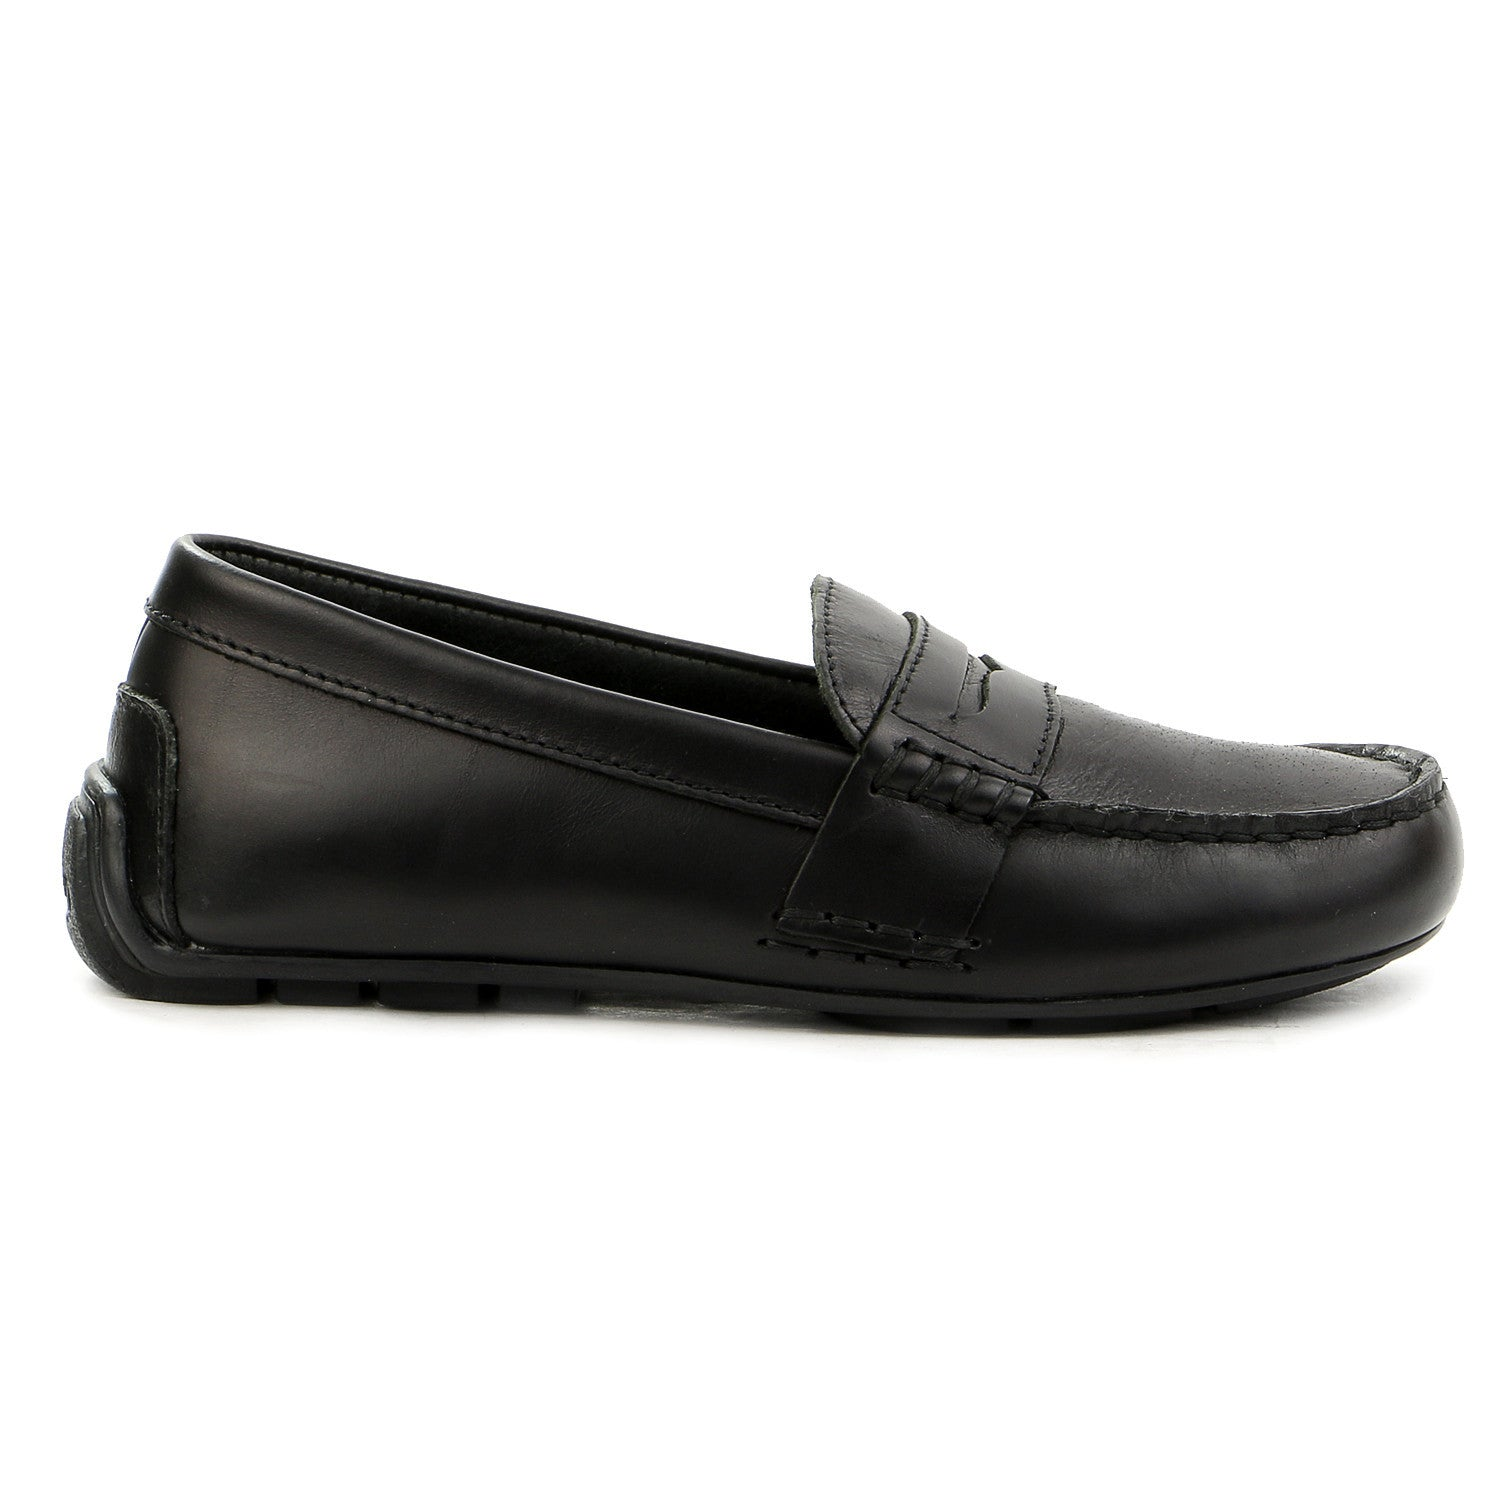 Ralph Lauren Telly Moccasin Loafer Shoe